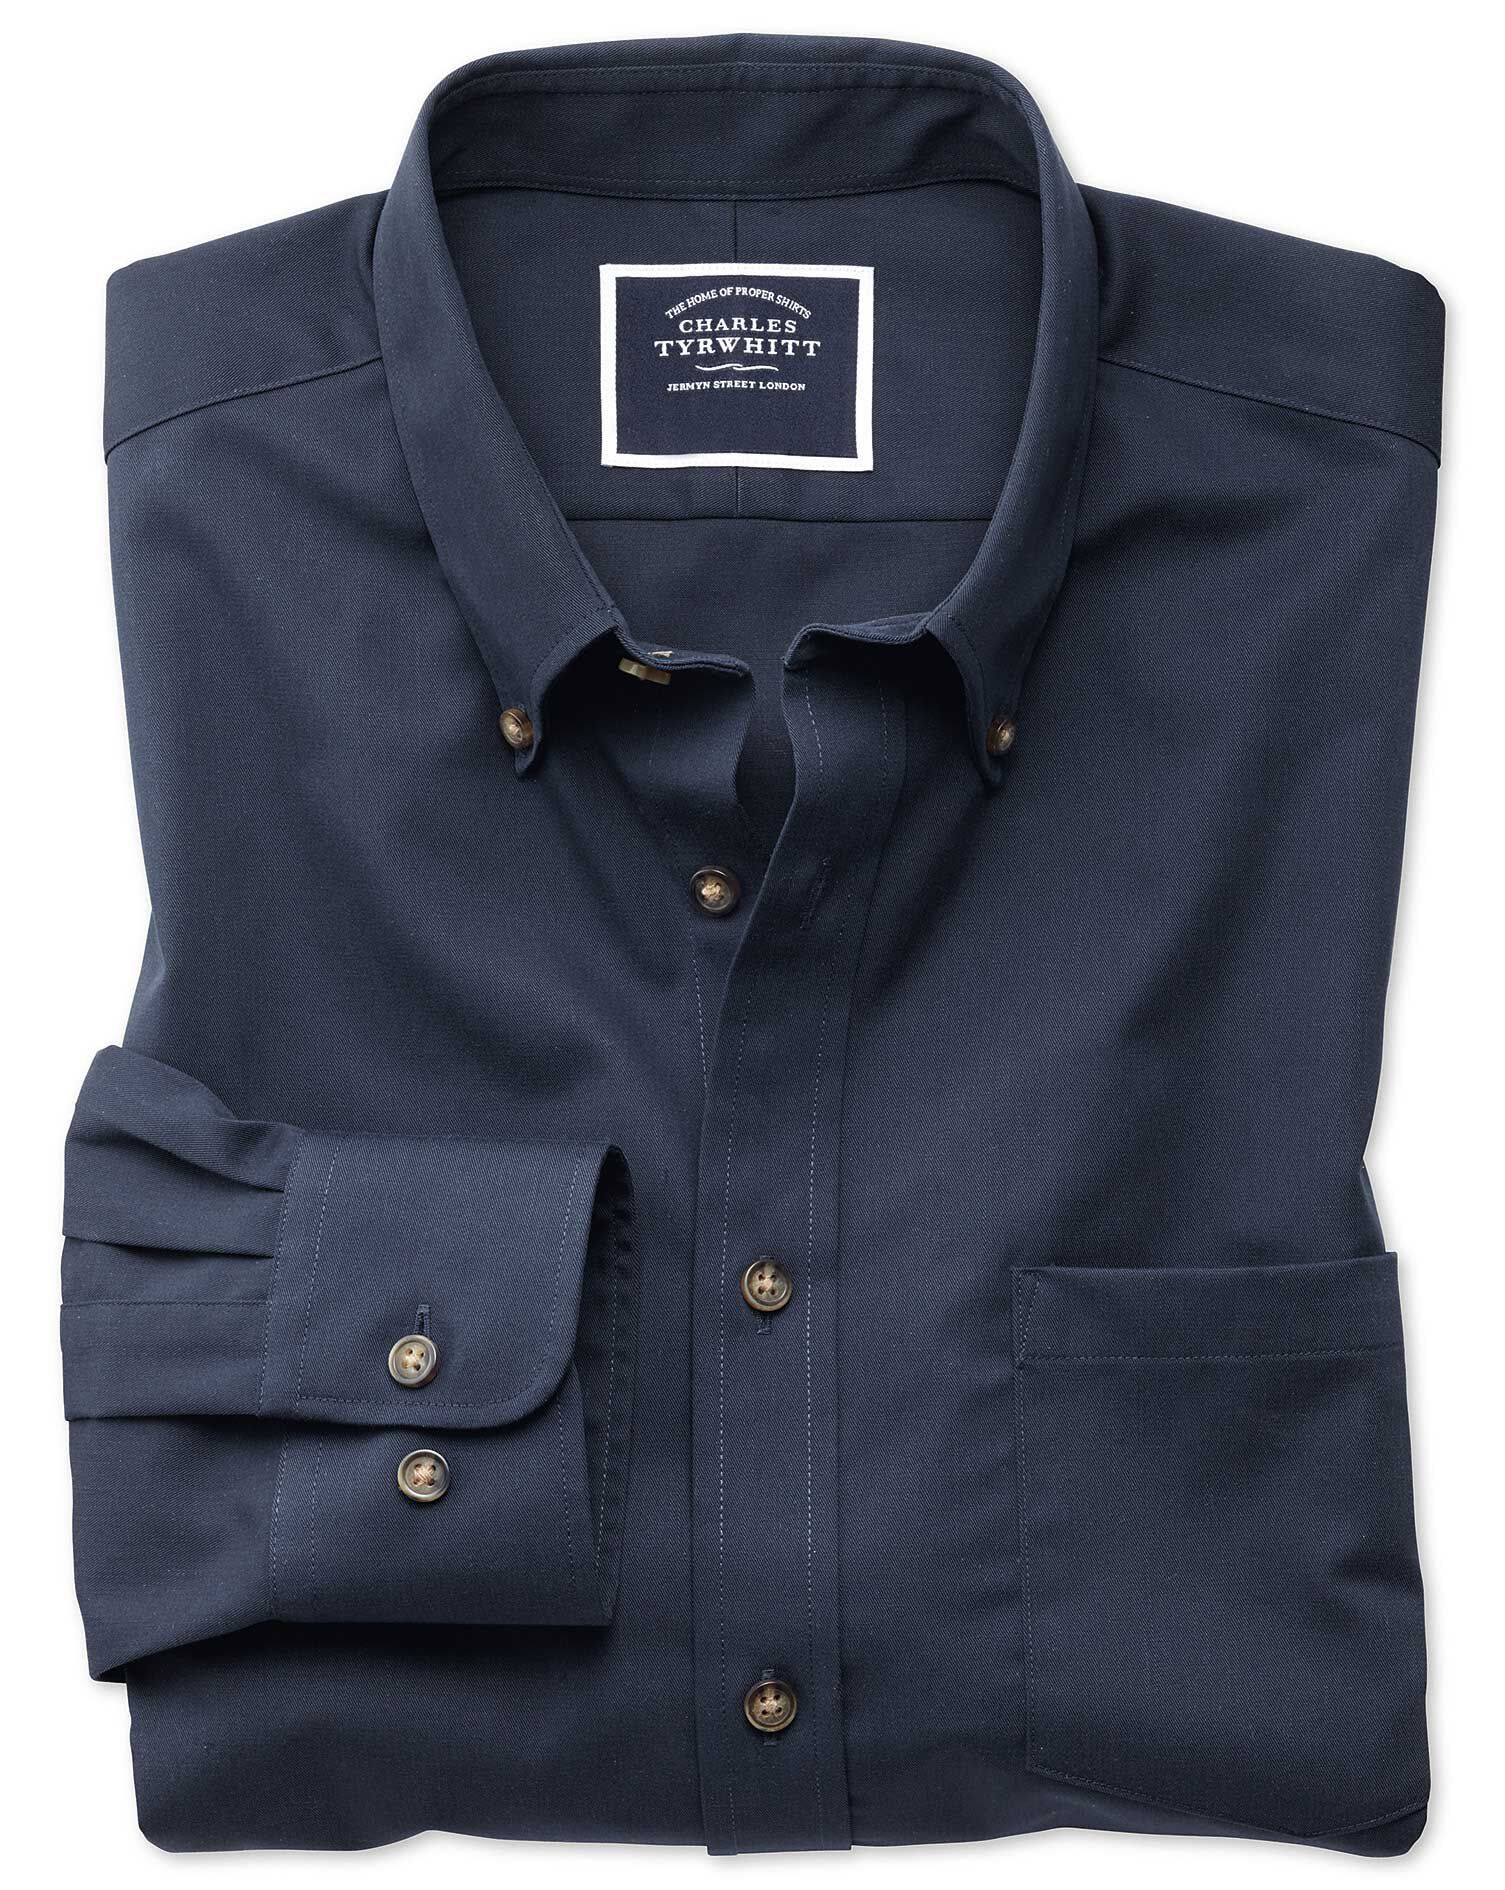 Classic Fit Button-Down Non-Iron Twill Navy Blue Cotton Shirt Single Cuff Size Small by Charles Tyrw